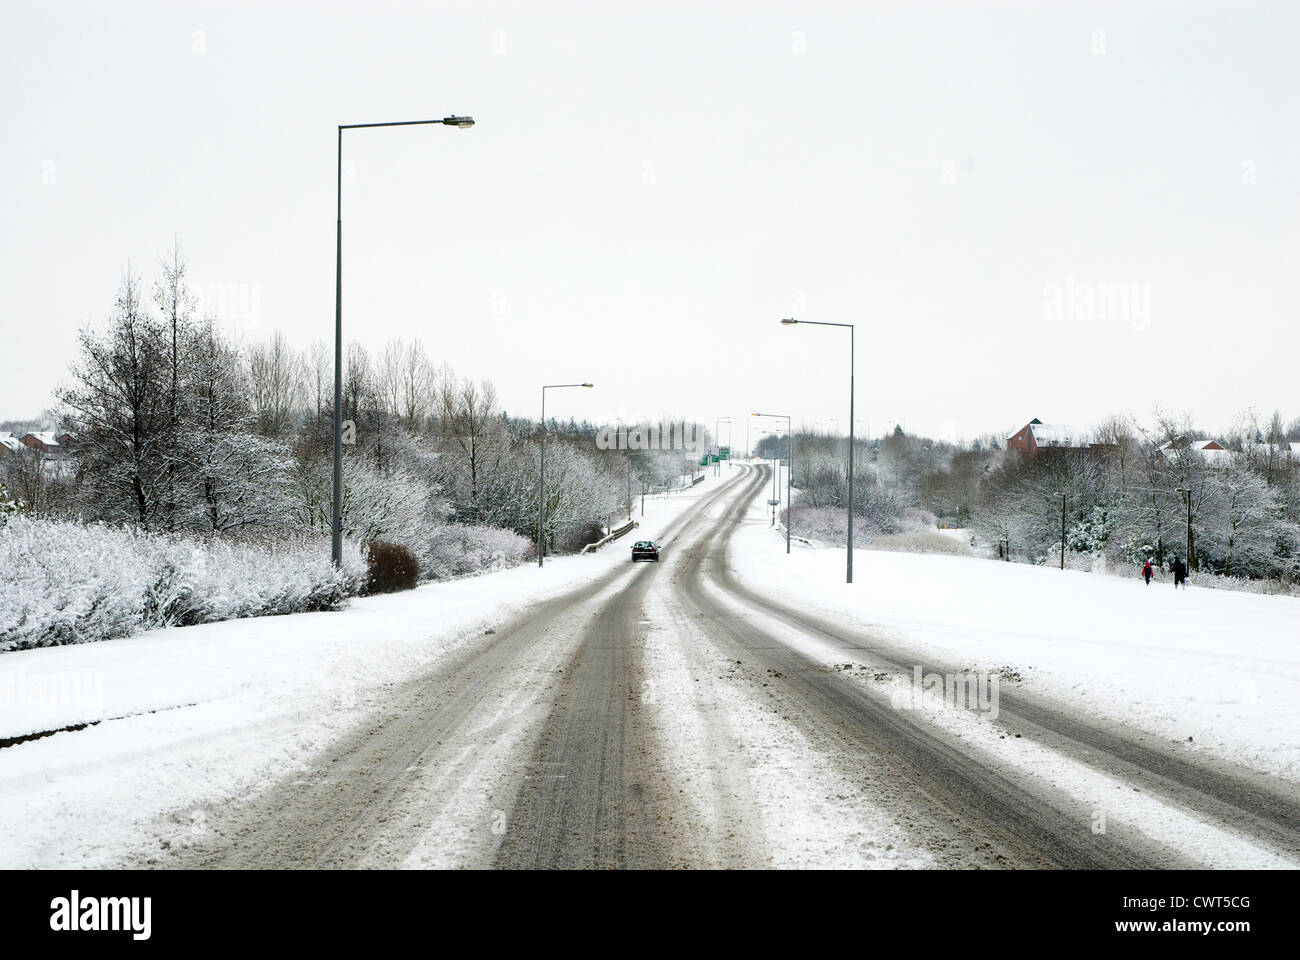 Snow covered roads - Stock Image